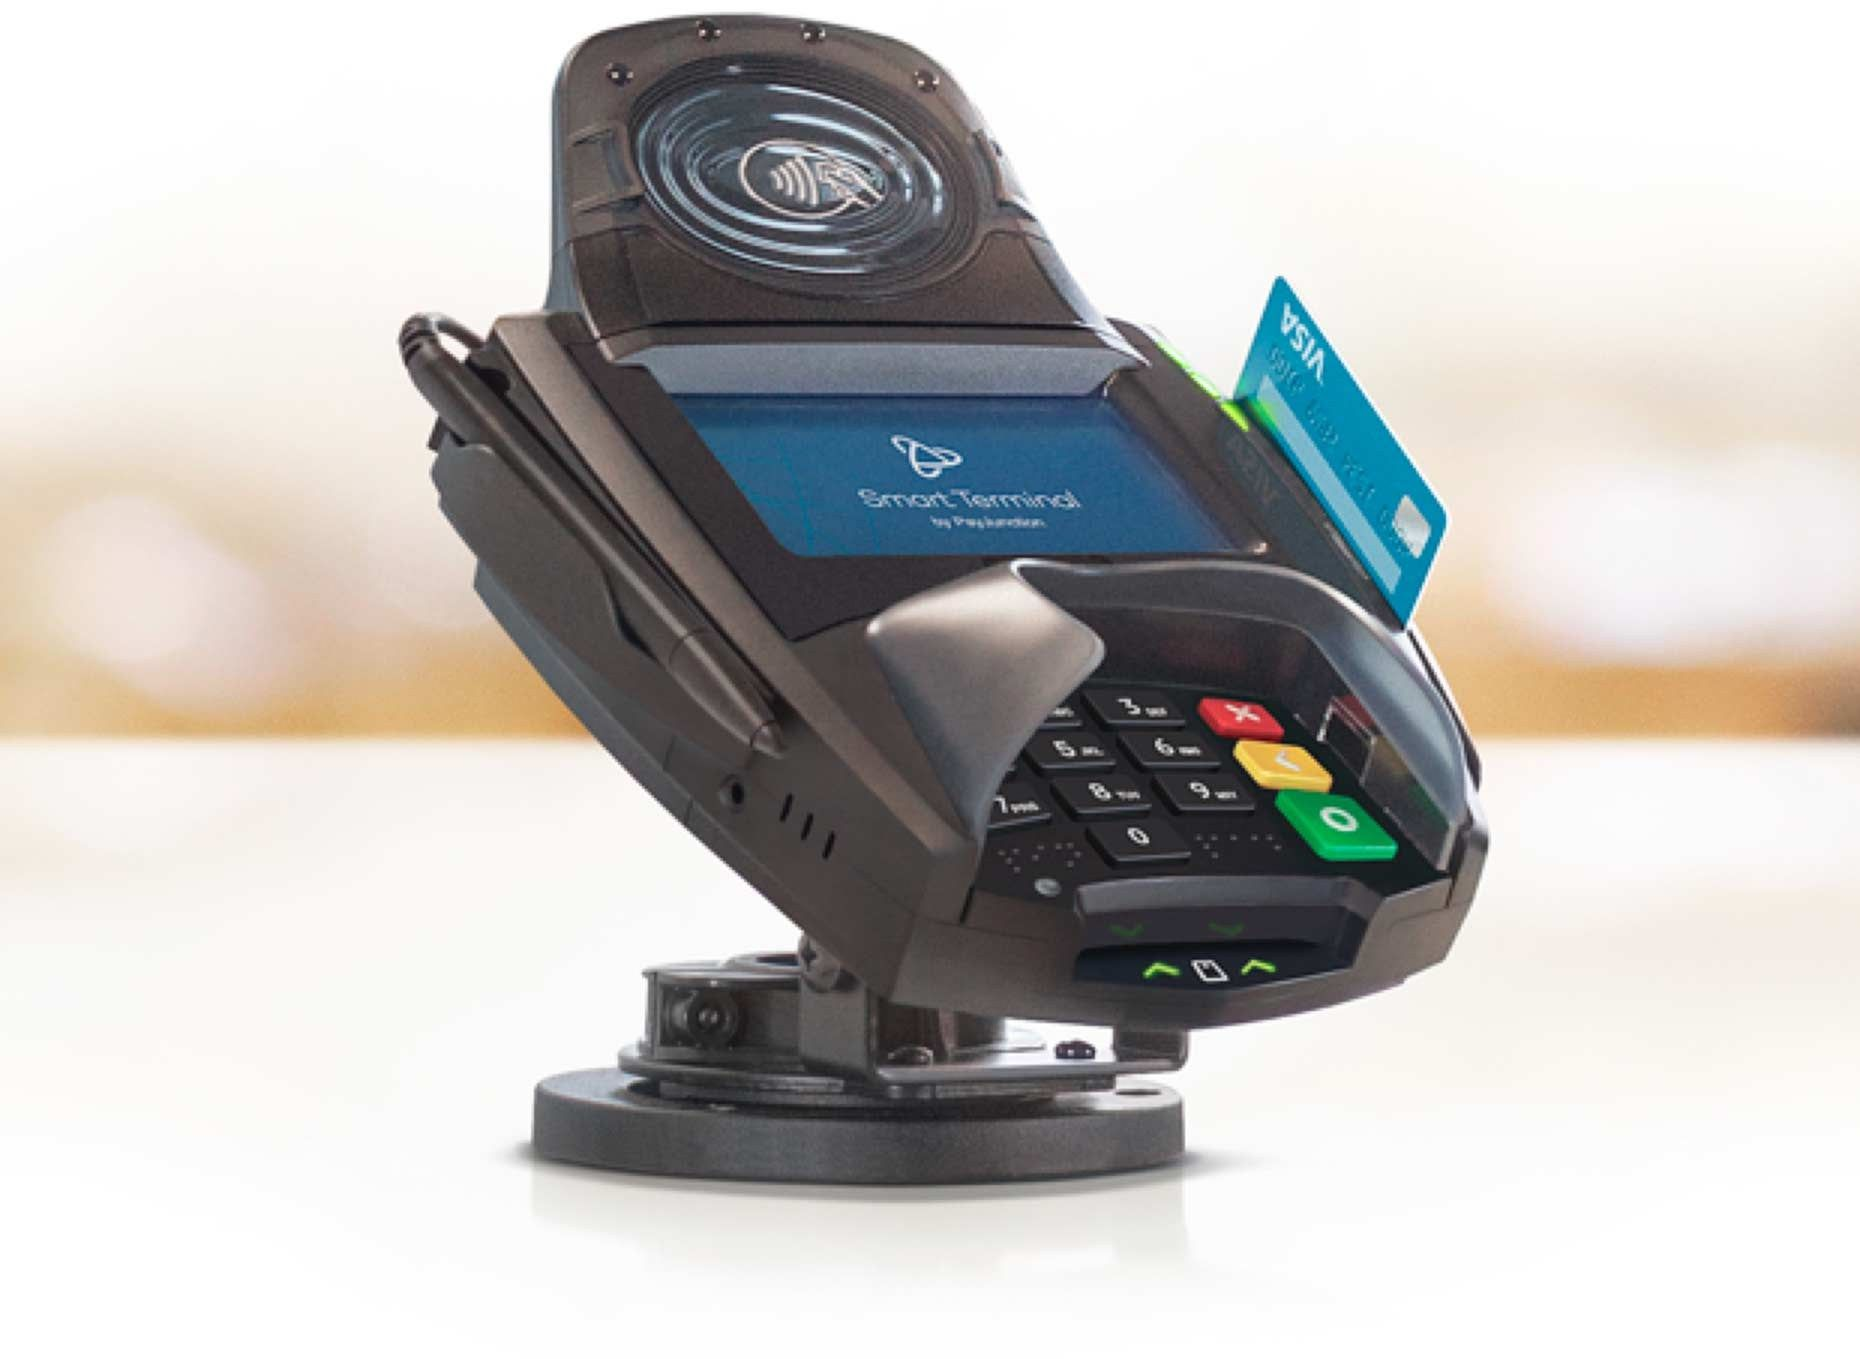 My Payjunction Best Merchant Services Merchant Services Magnetic Stripe Card Credit Card Processing